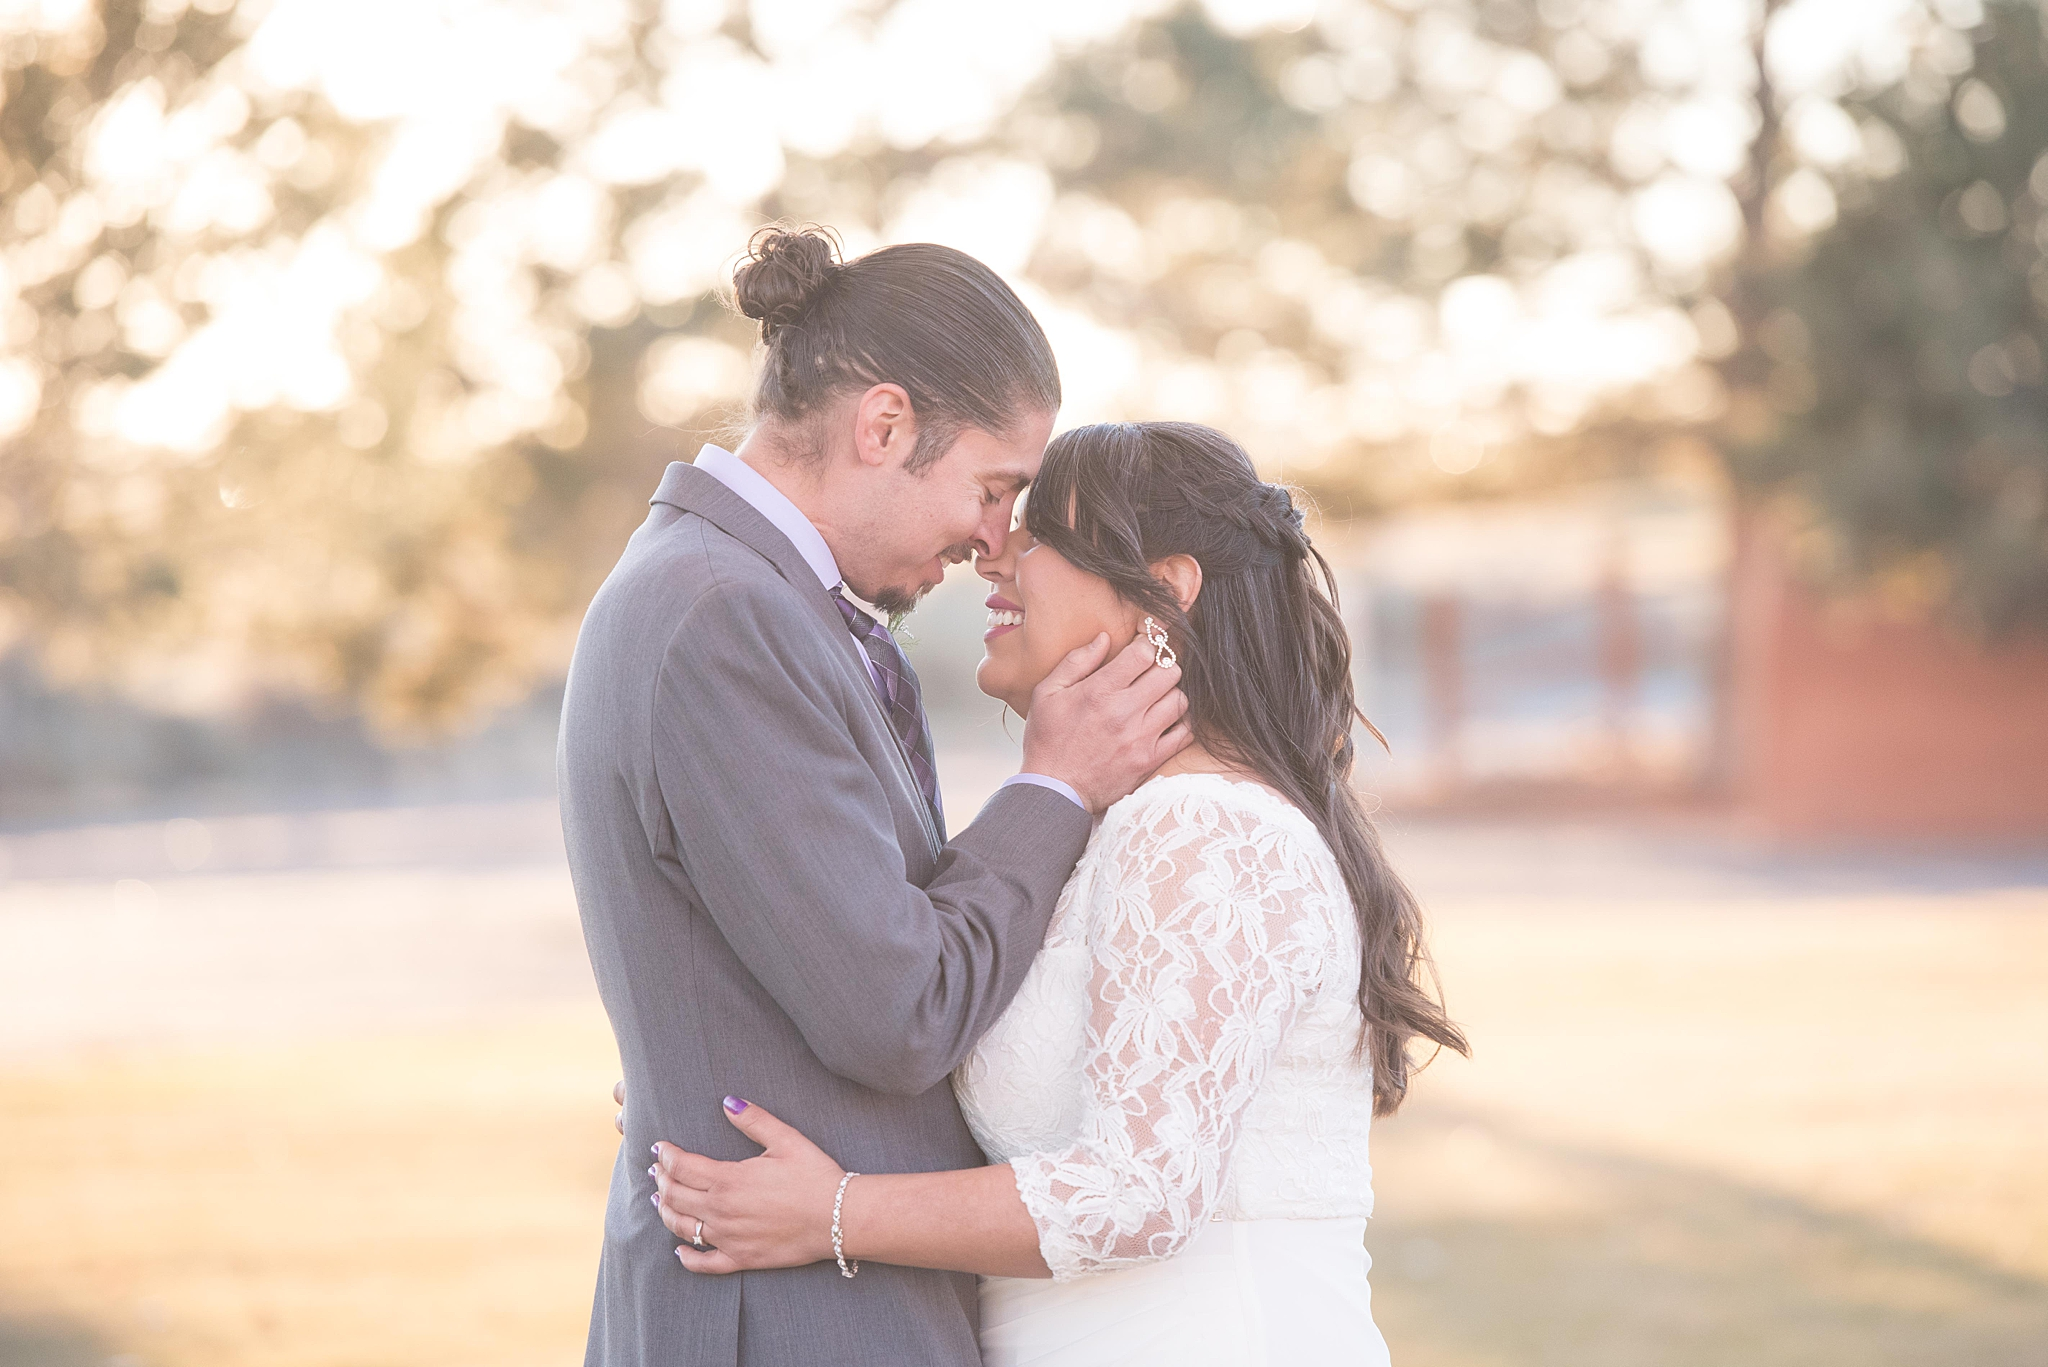 kaylakittsphotography-travis-michelle-prairie-star-albuquerque-wedding-photographer_0023.jpg